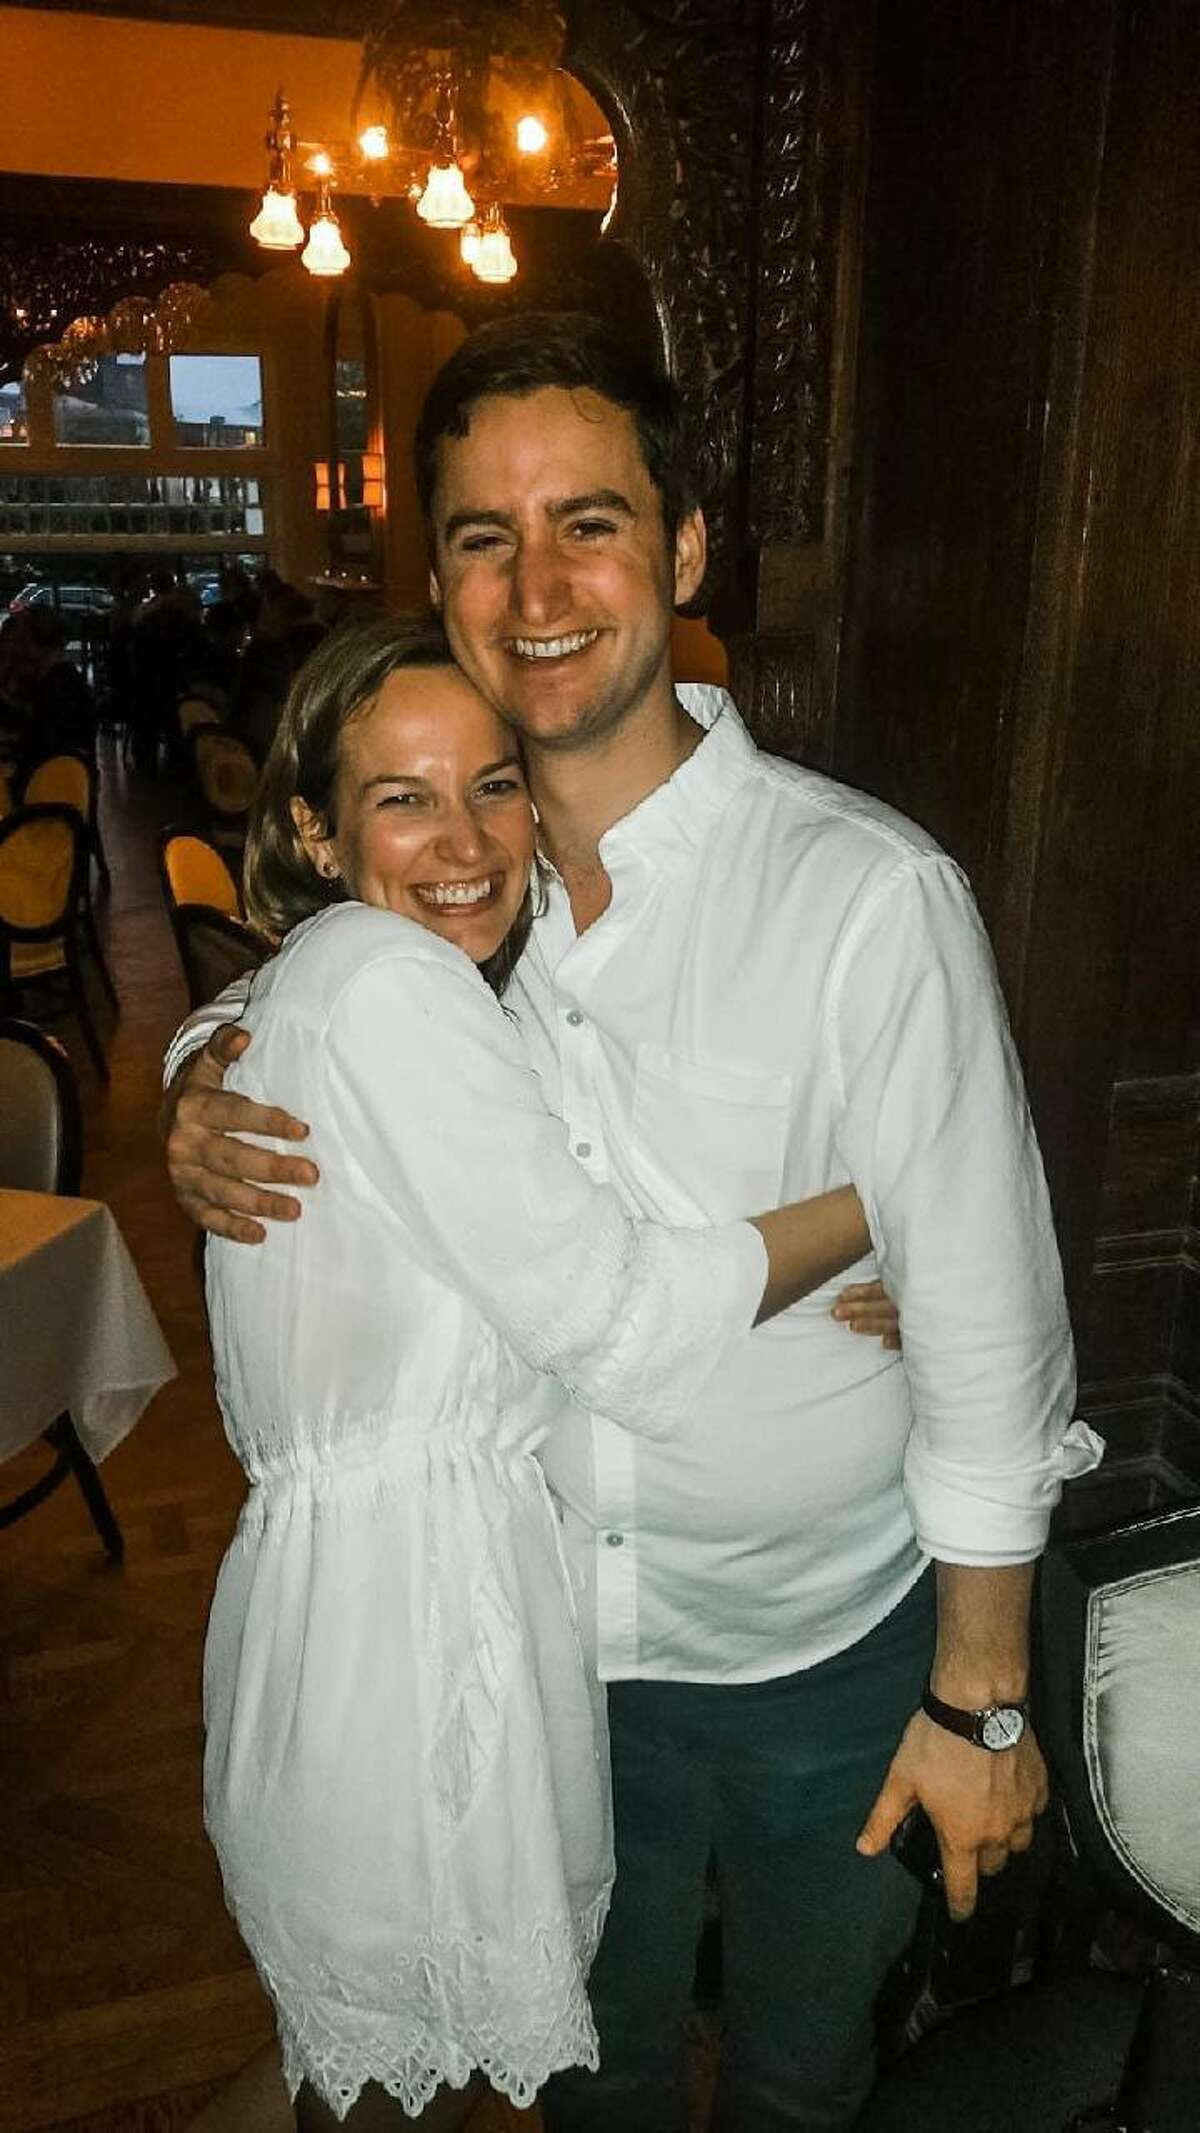 Dr. Courtney Haviland, 33, and Dr. William Shrauner, 32, of Boston, Mass. The two were very family-oriented and loved helping people, a family friend said.